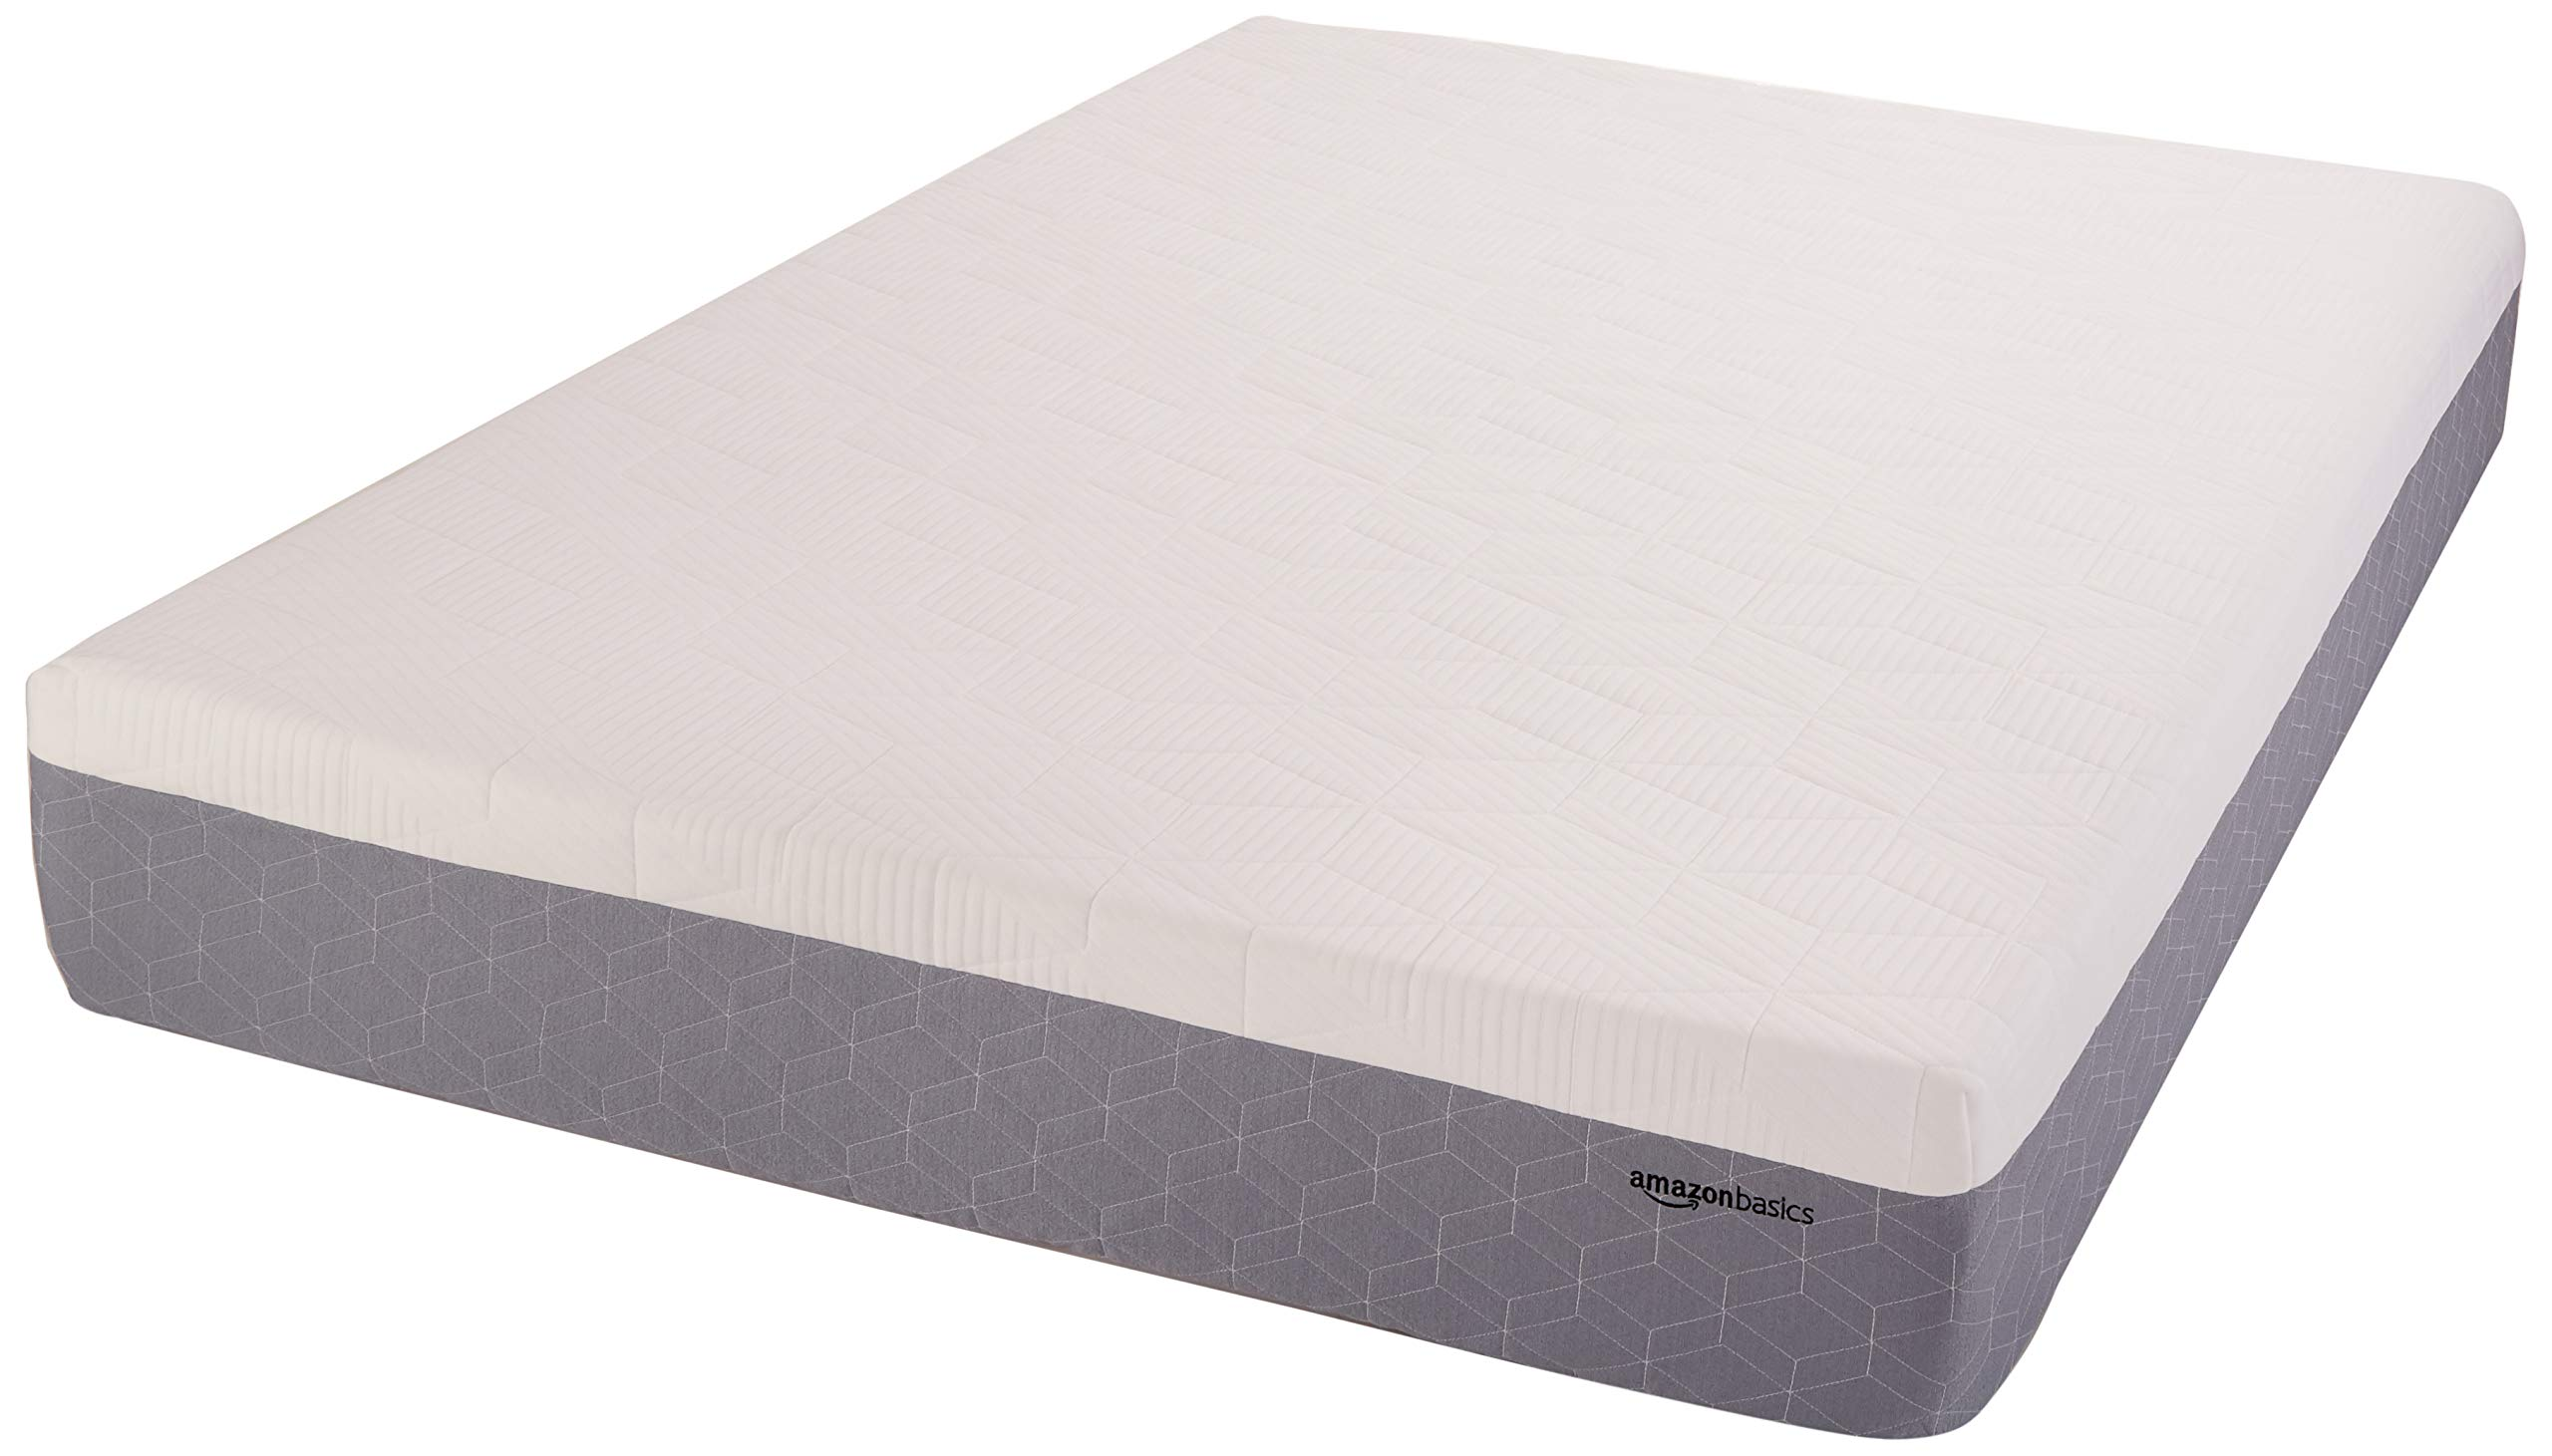 AmazonBasics Cooling Gel-Infused Memory Foam Mattress - Medium Firmness, CertiPUR-US Certified - 12-Inch, Queen by AmazonBasics